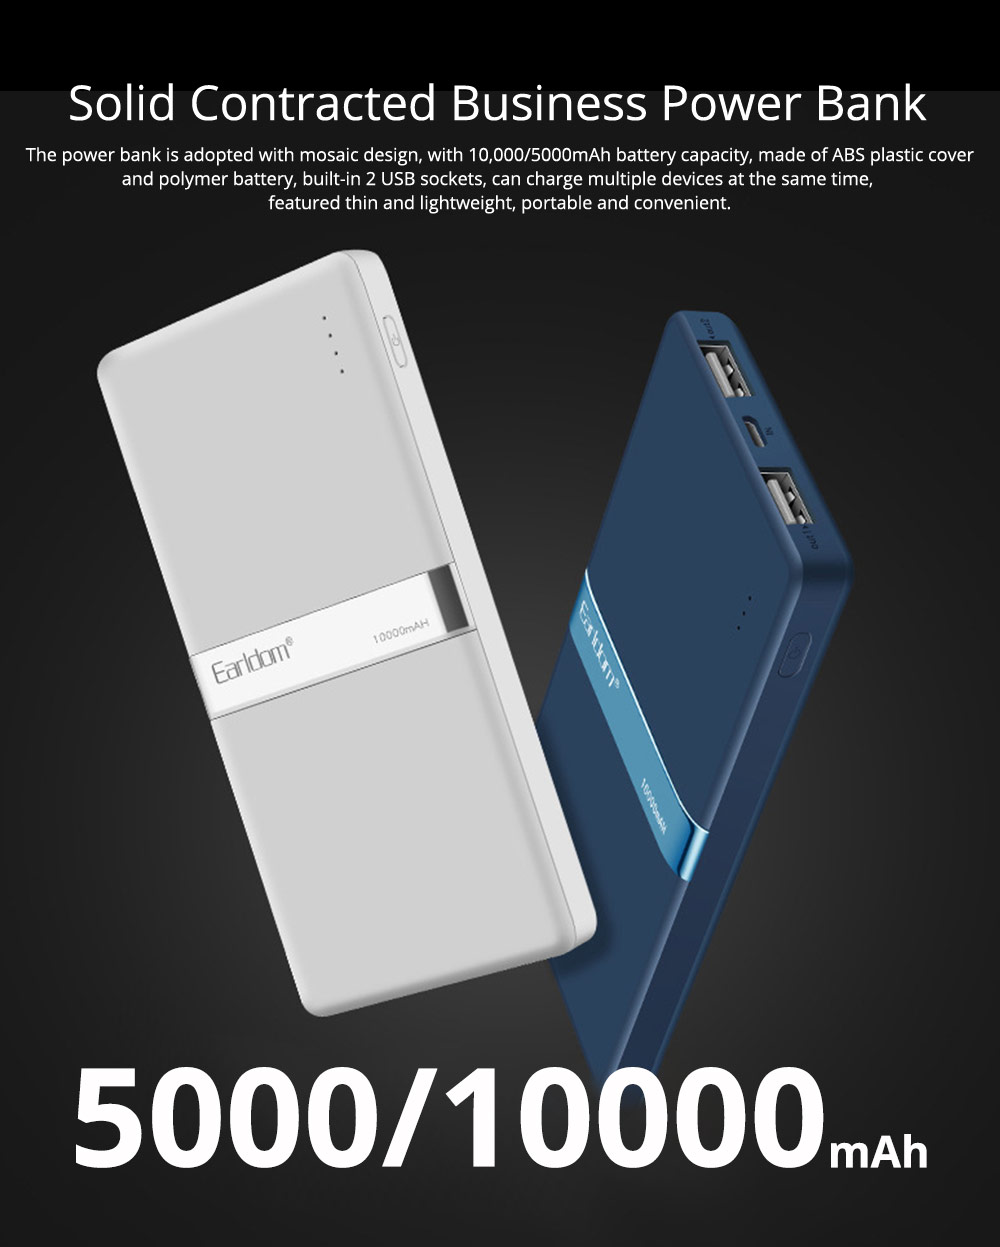 Stylish Business Power Bank 10000 5000mAh, Portable External Polymer Battery Charger USB Socket Power Bank for Cell Phone 0